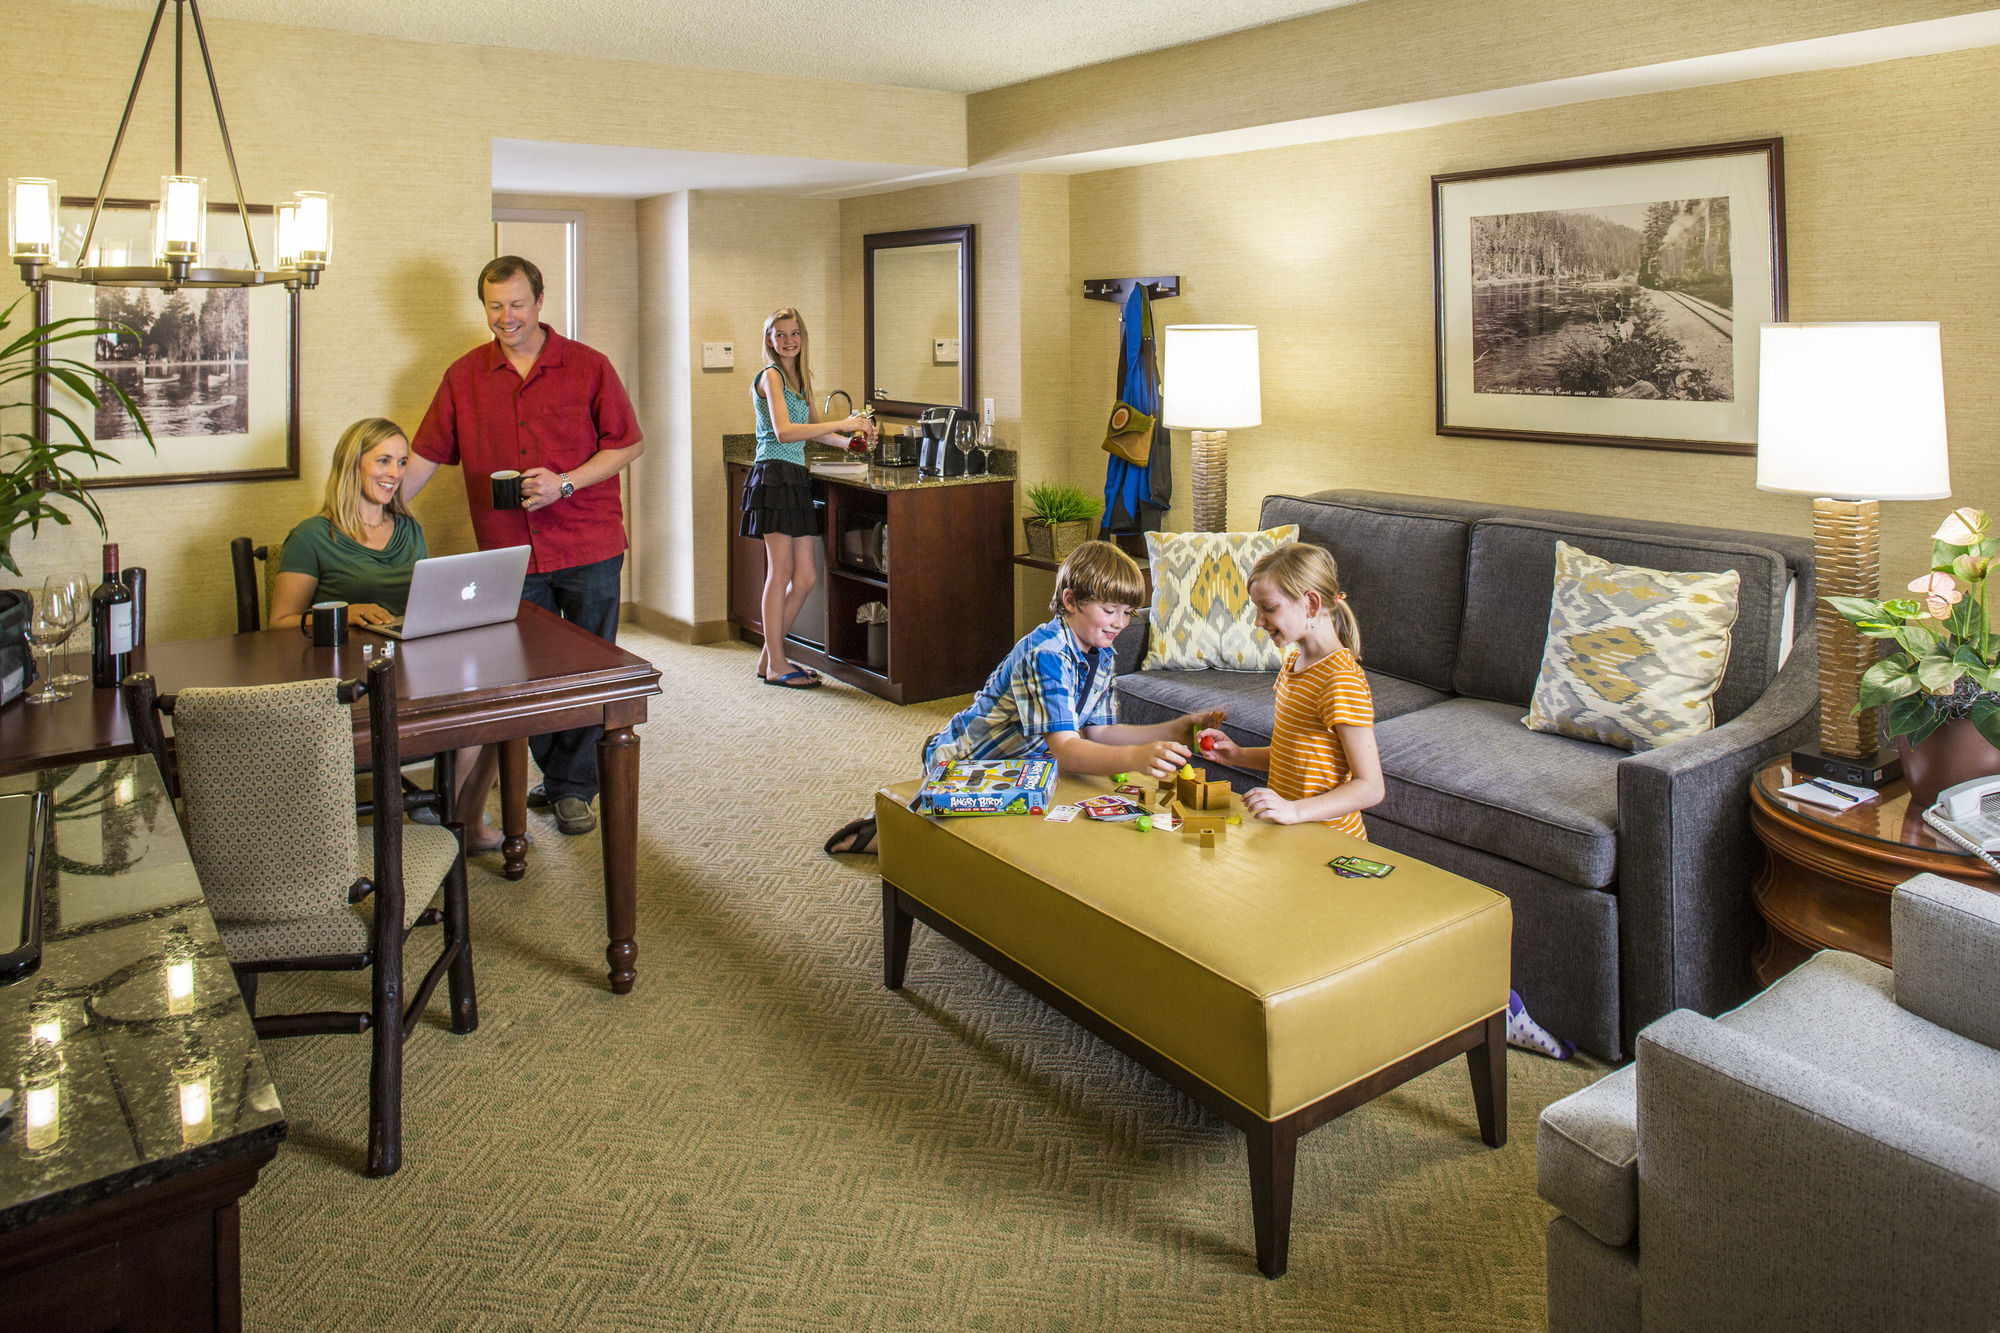 Lake Tahoe 2 Bedroom Suites South Lake Tahoe Hotel Coupons For South Lake Tahoe California